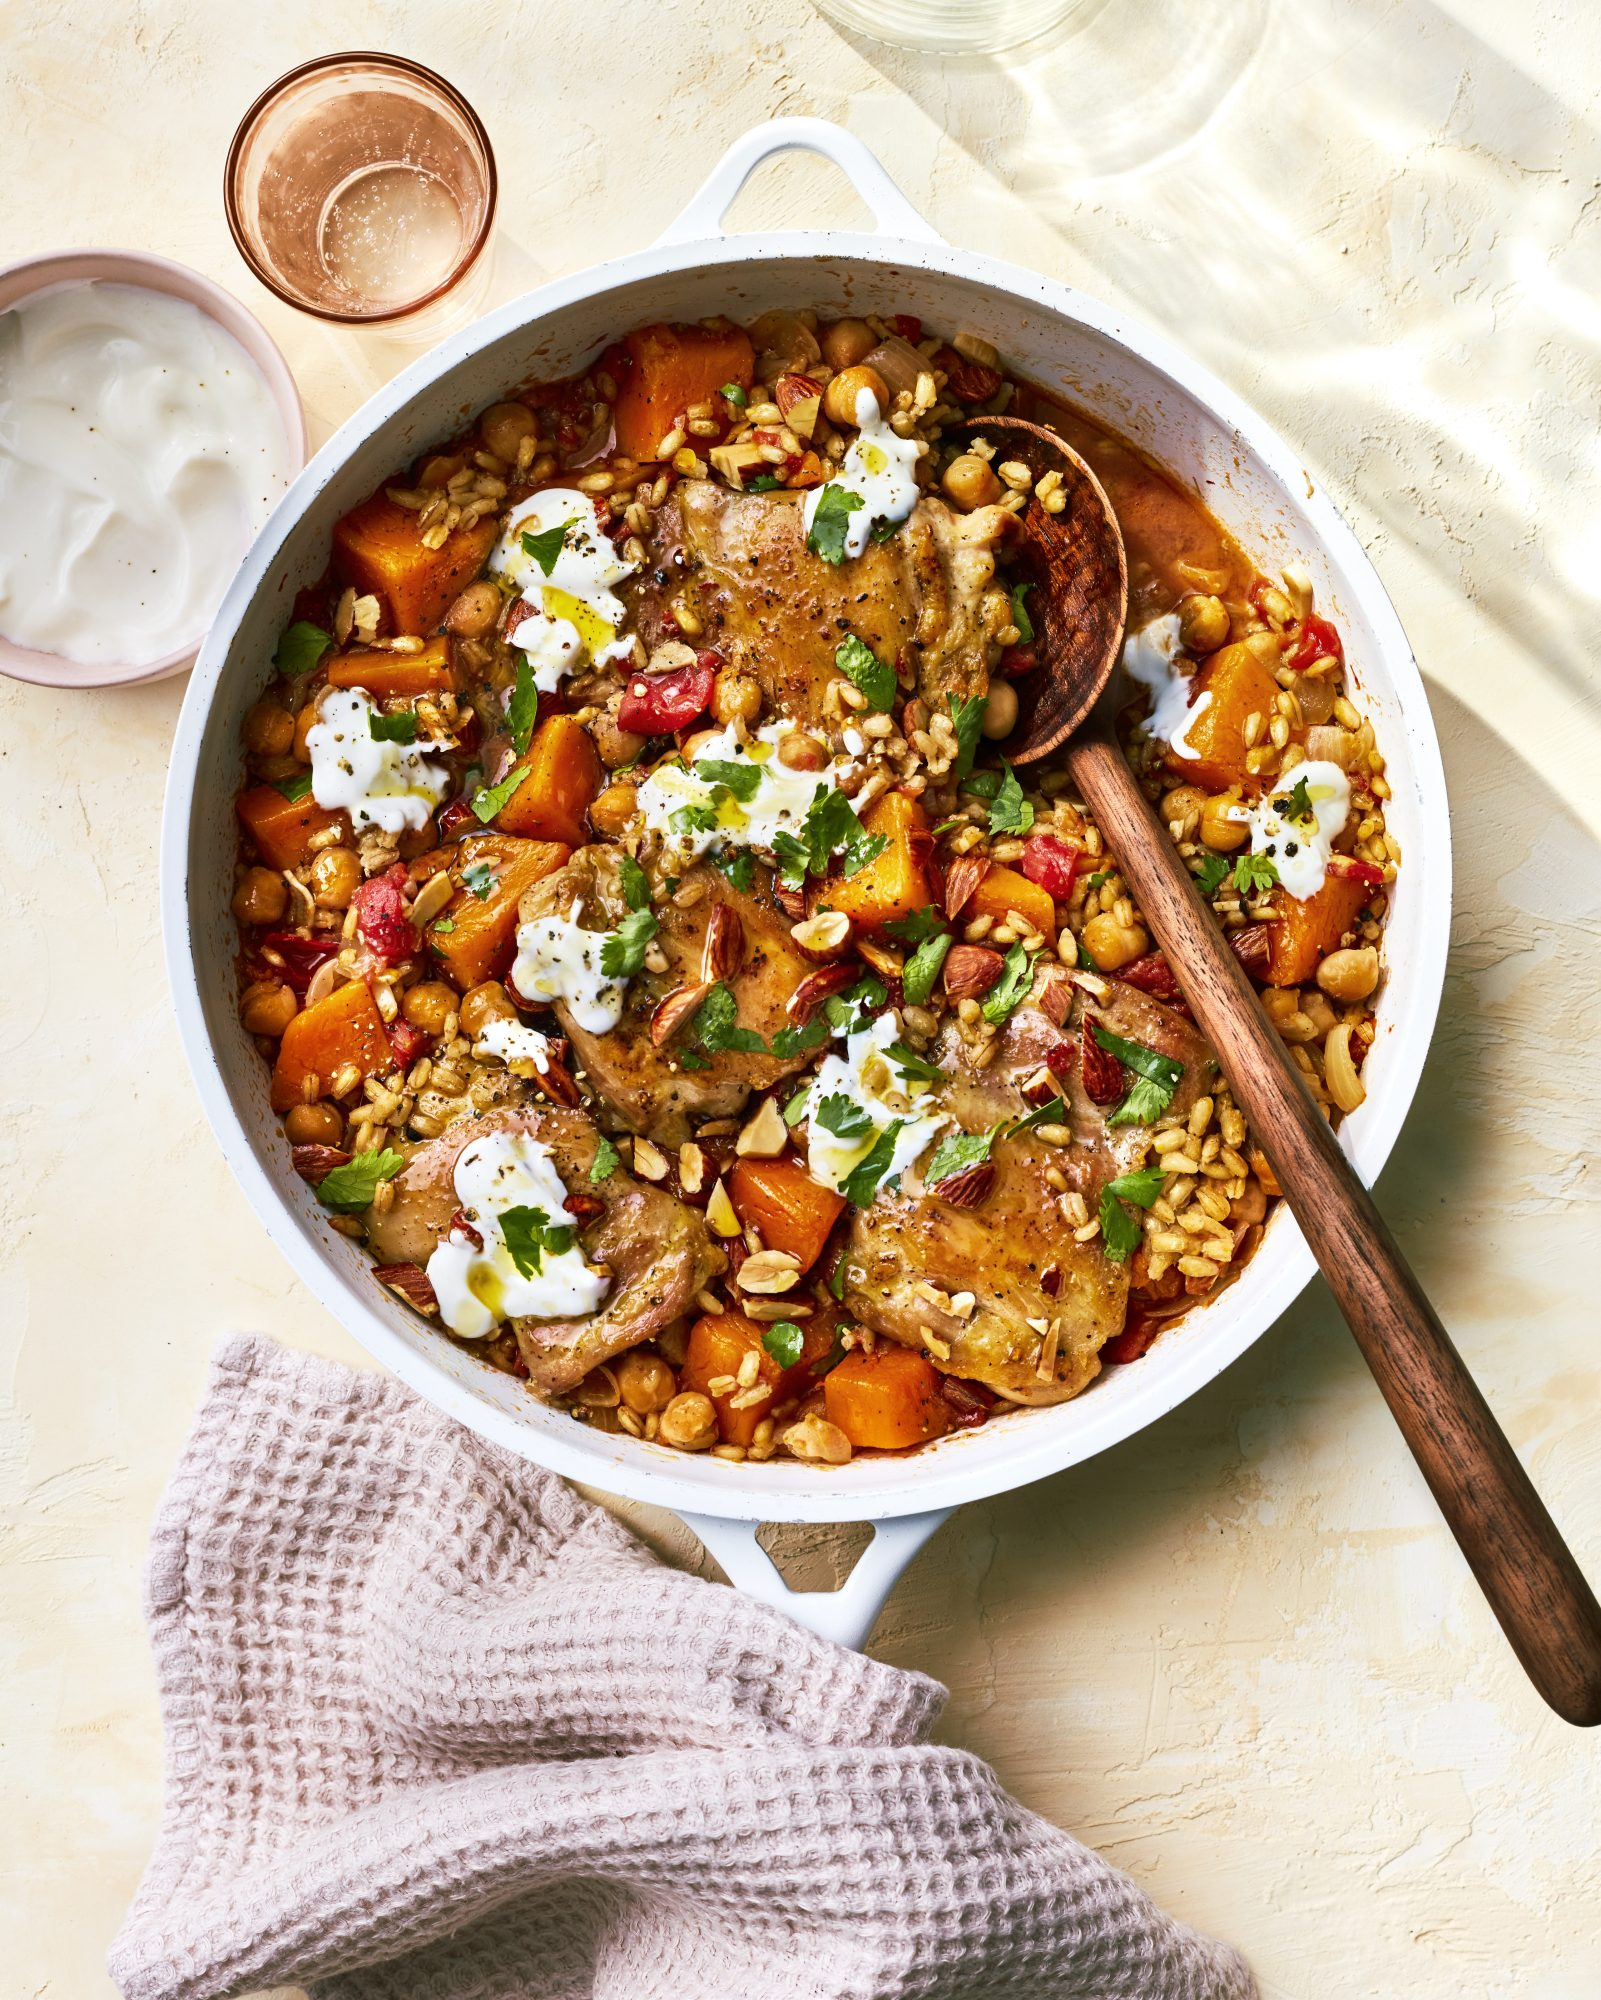 MARCH-19-RECIPES-CHICKEN-BUTTERNUT-SQUASH-BARLEY-SKILLET-DINNER